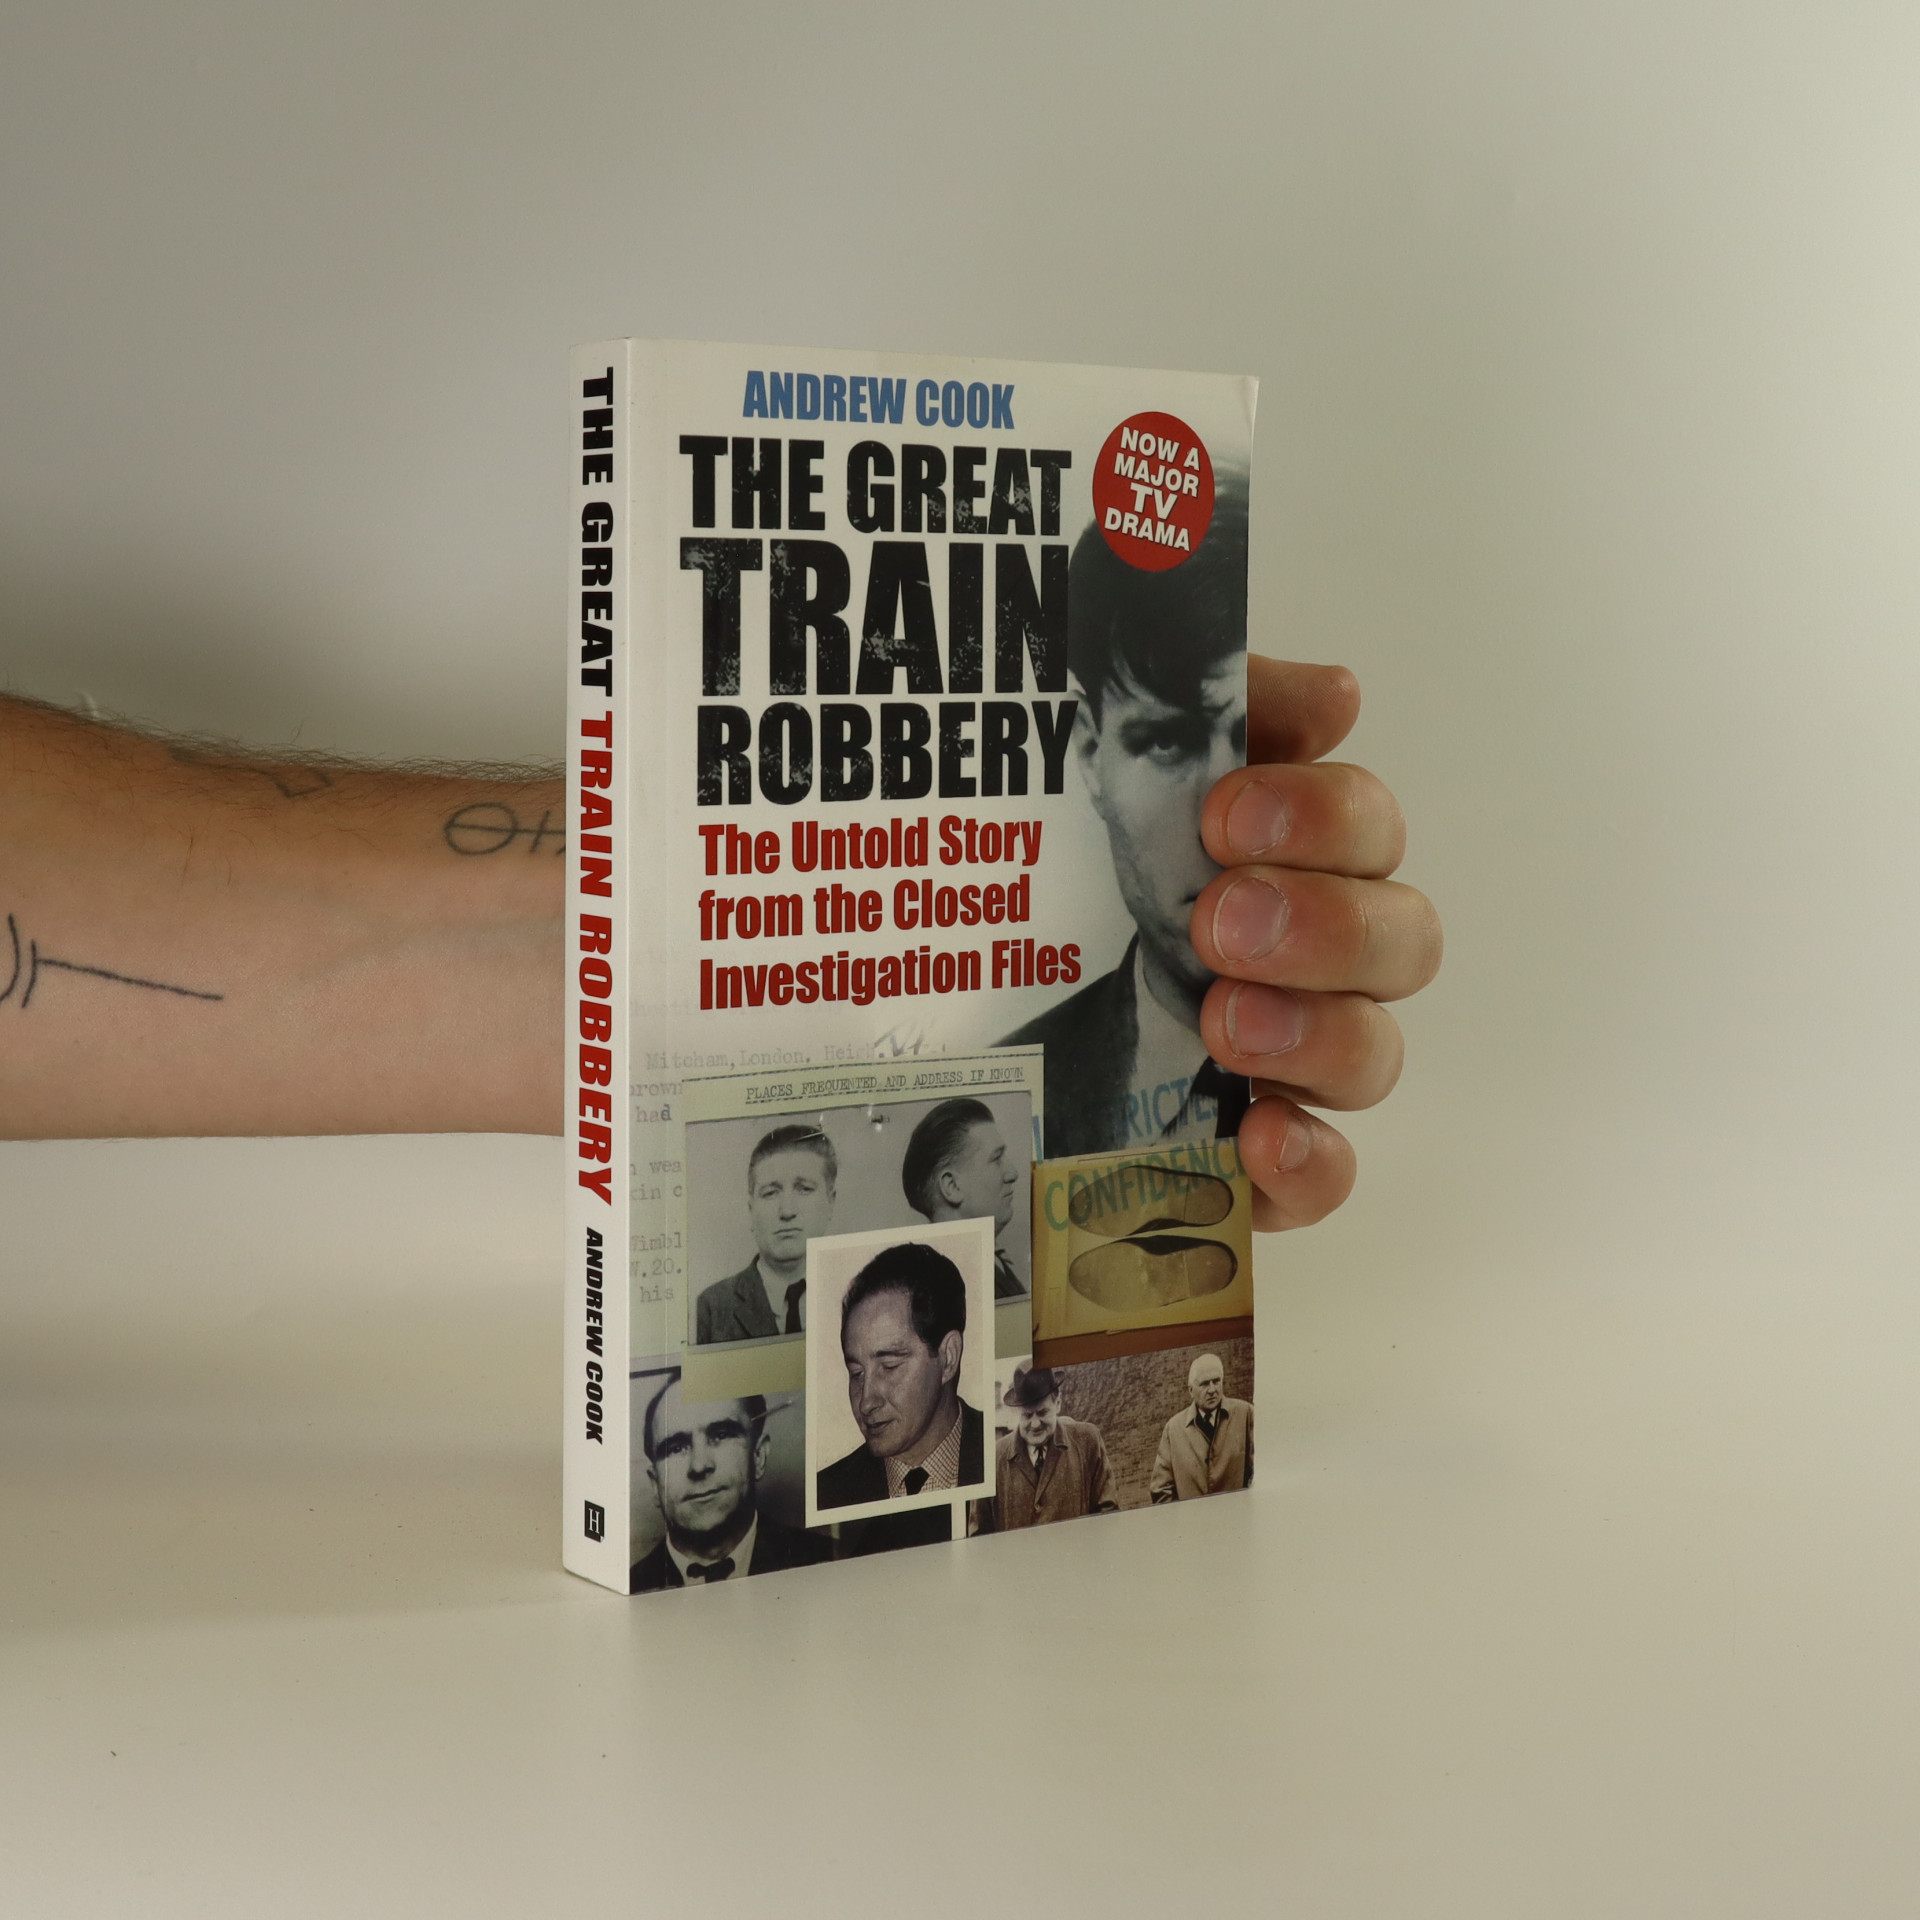 antikvární kniha The Great Train Robbery. The untold story from the closed investigation files, 2013